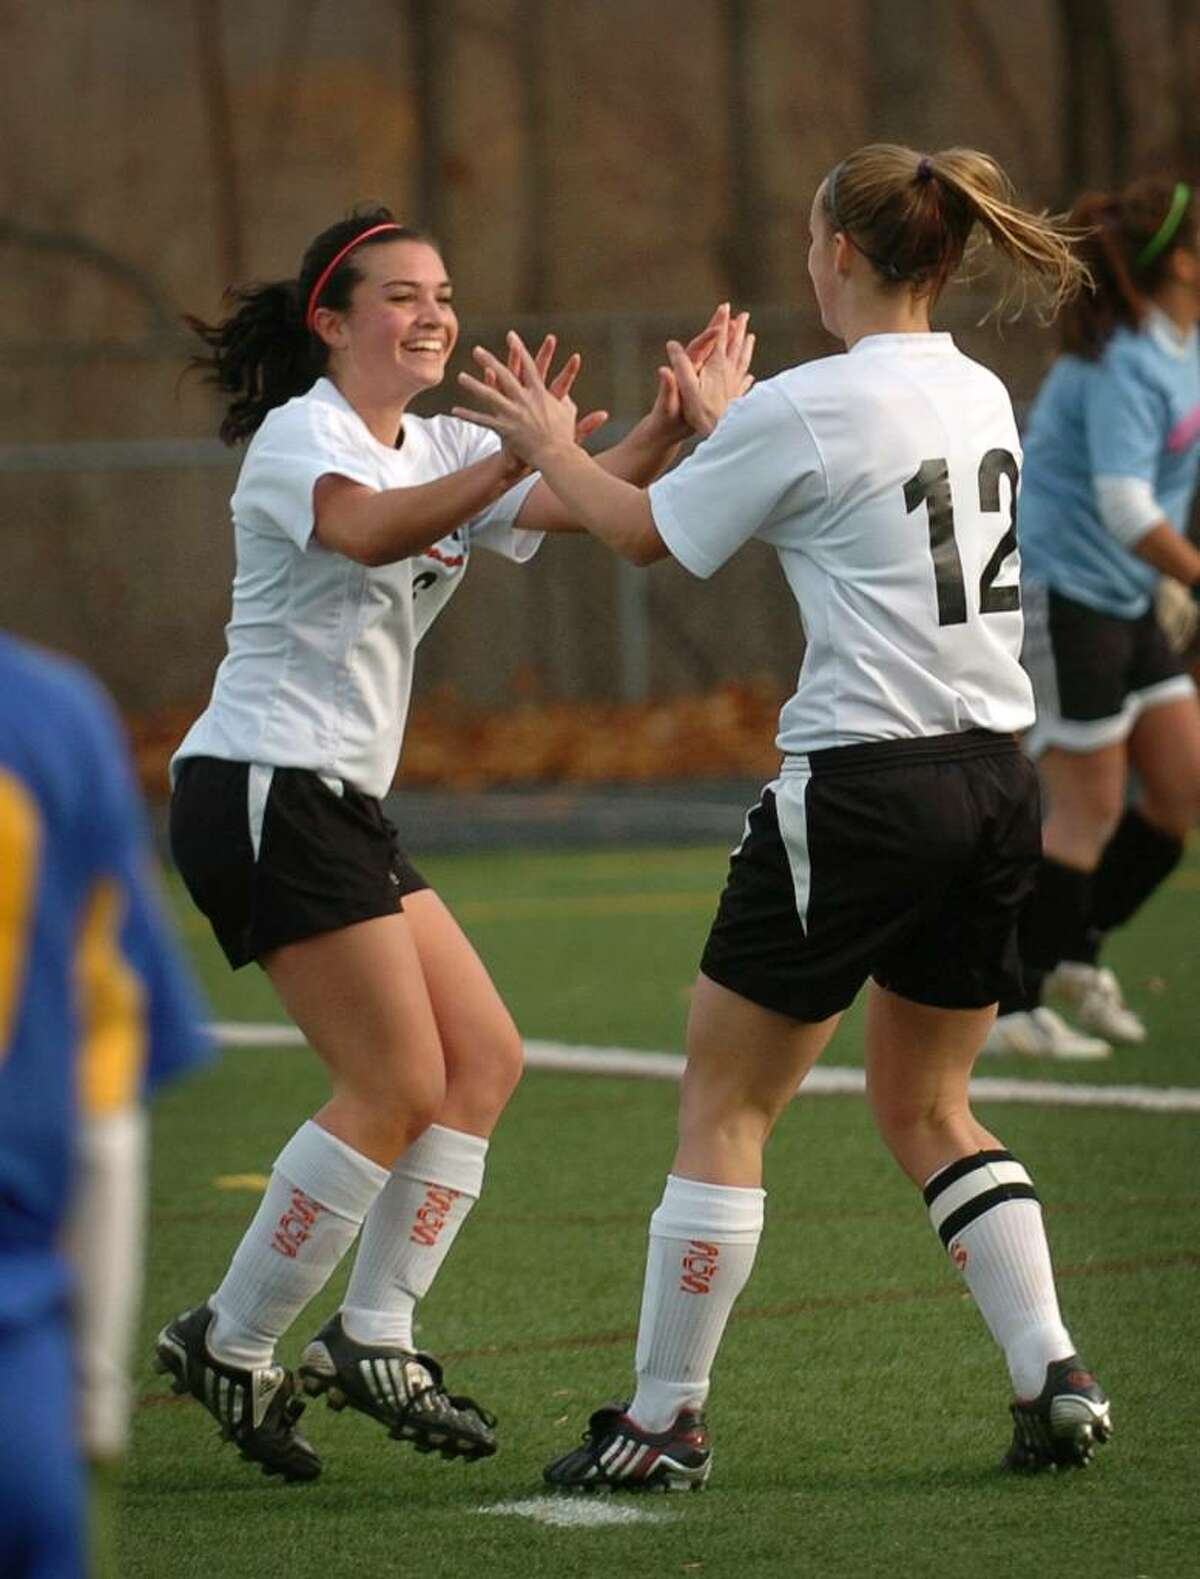 Shelton's Megan Manzo, left, and Jennifer Spicer celebrate a goal during the second half of Wednesday's Class LL state tournament game at Shelton High School.